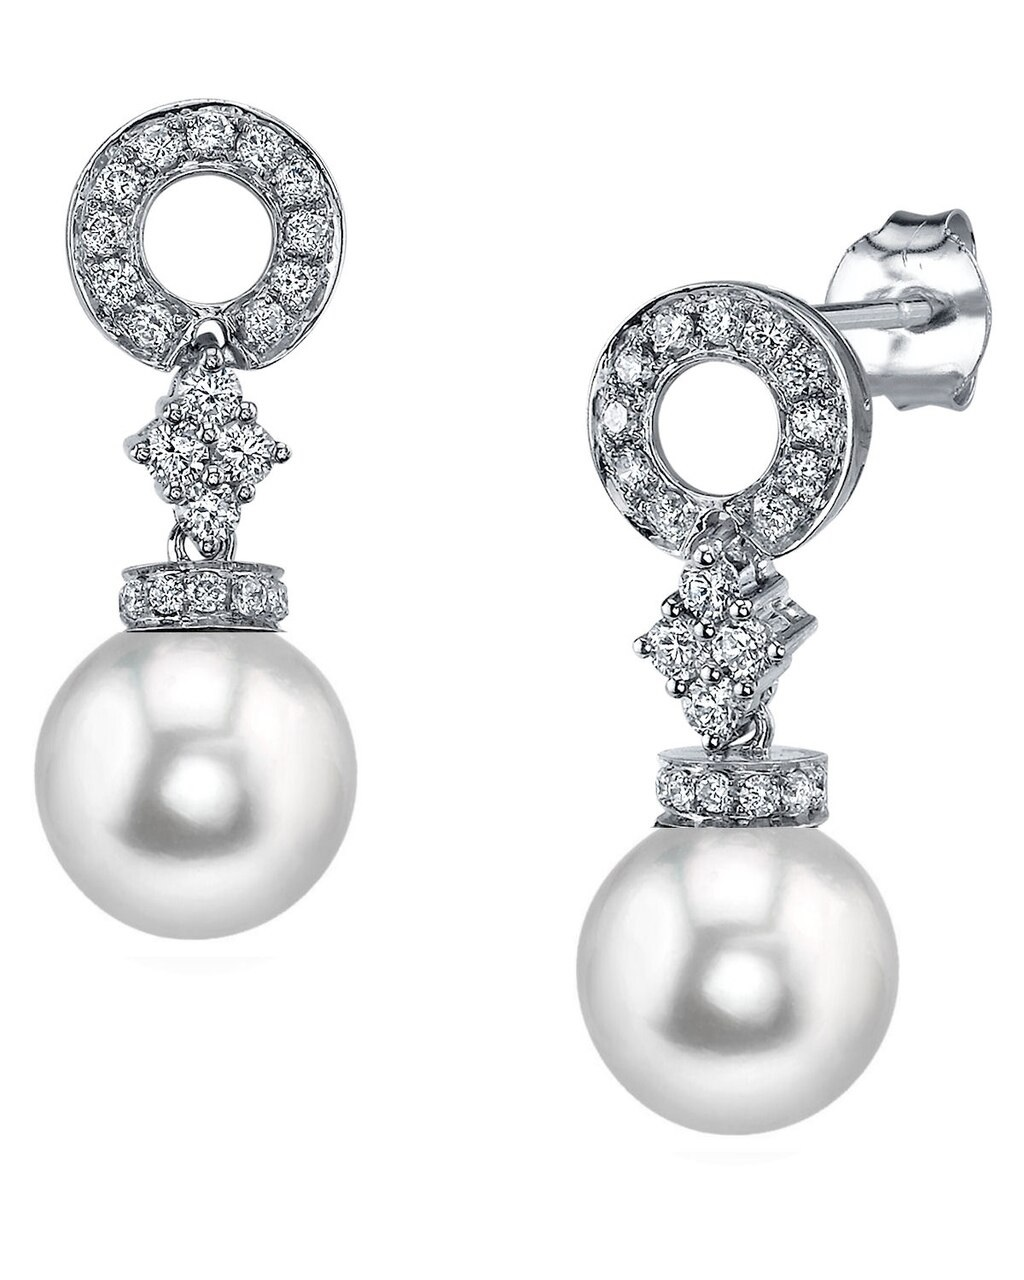 Elegant drop earrings feature two 8.0-8.5mm Japanese Akoya pearls, selected for their luminous luster